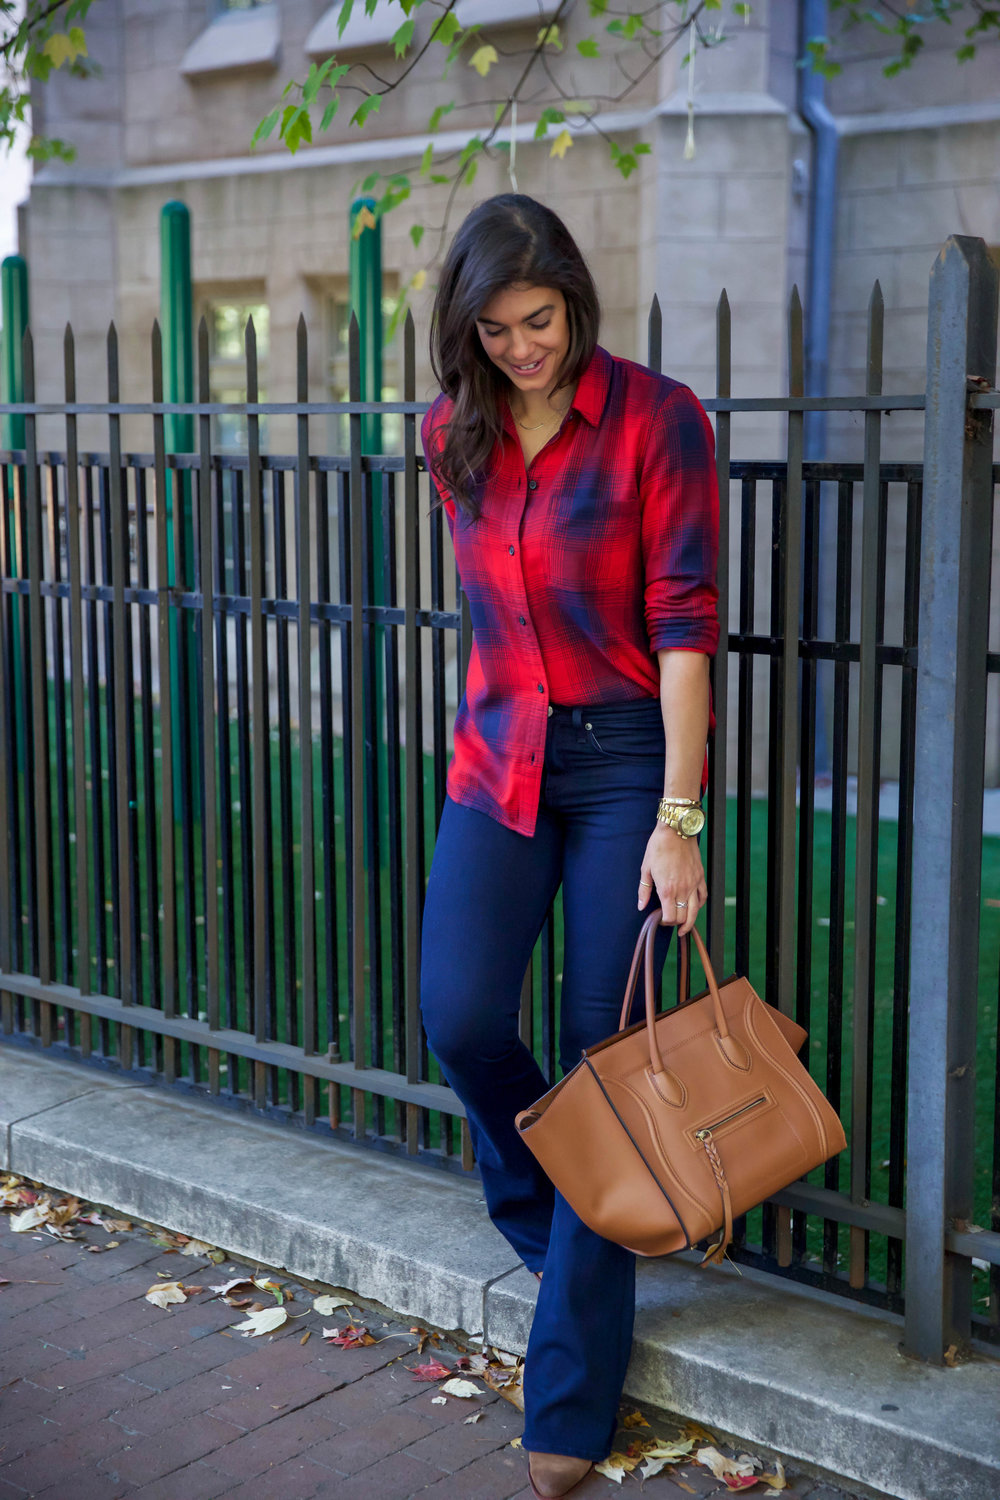 fall-ootd-dark-denim-flares-plaid-shirt-lauren-schwaiger-style-blog.jpg